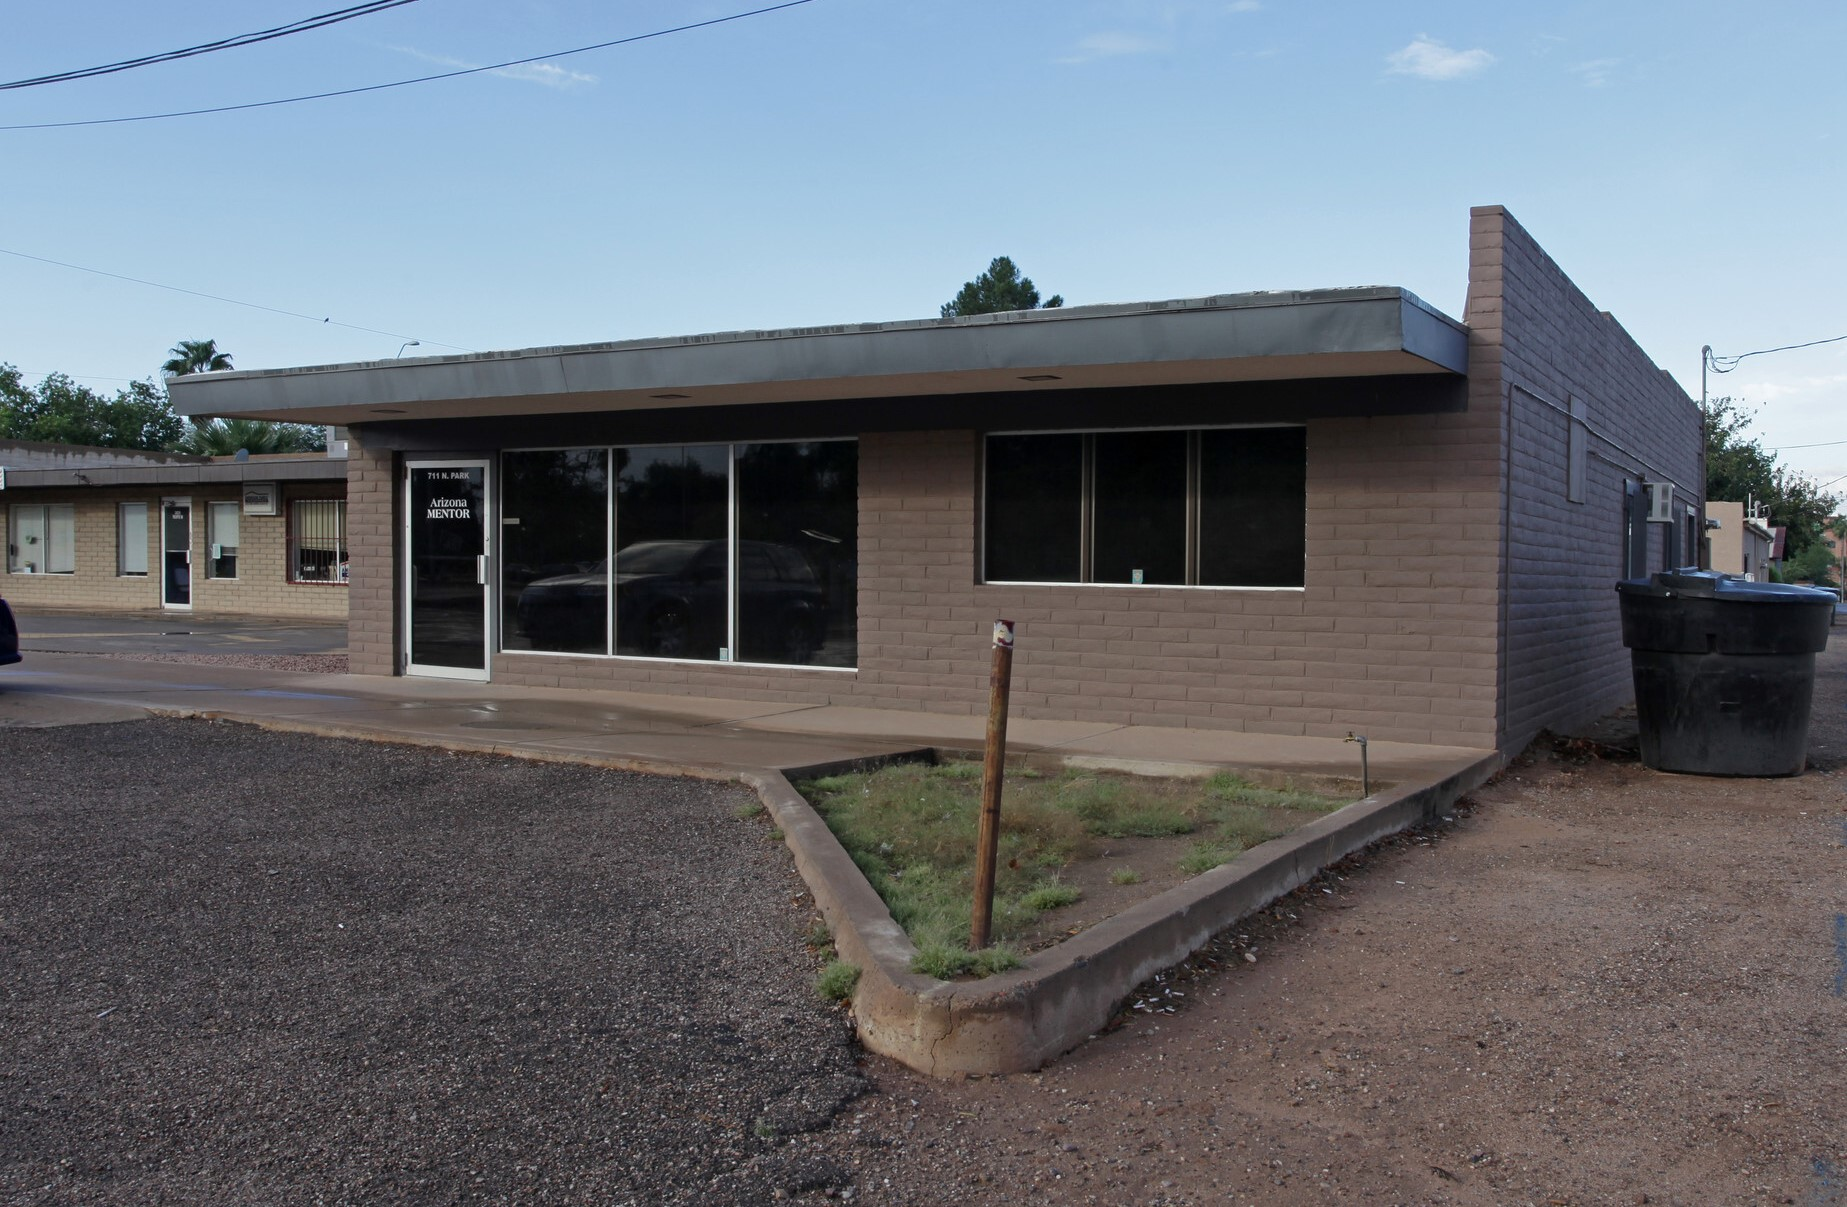 711 N Park Ave, Casa Grande AZ 85122 Office Building